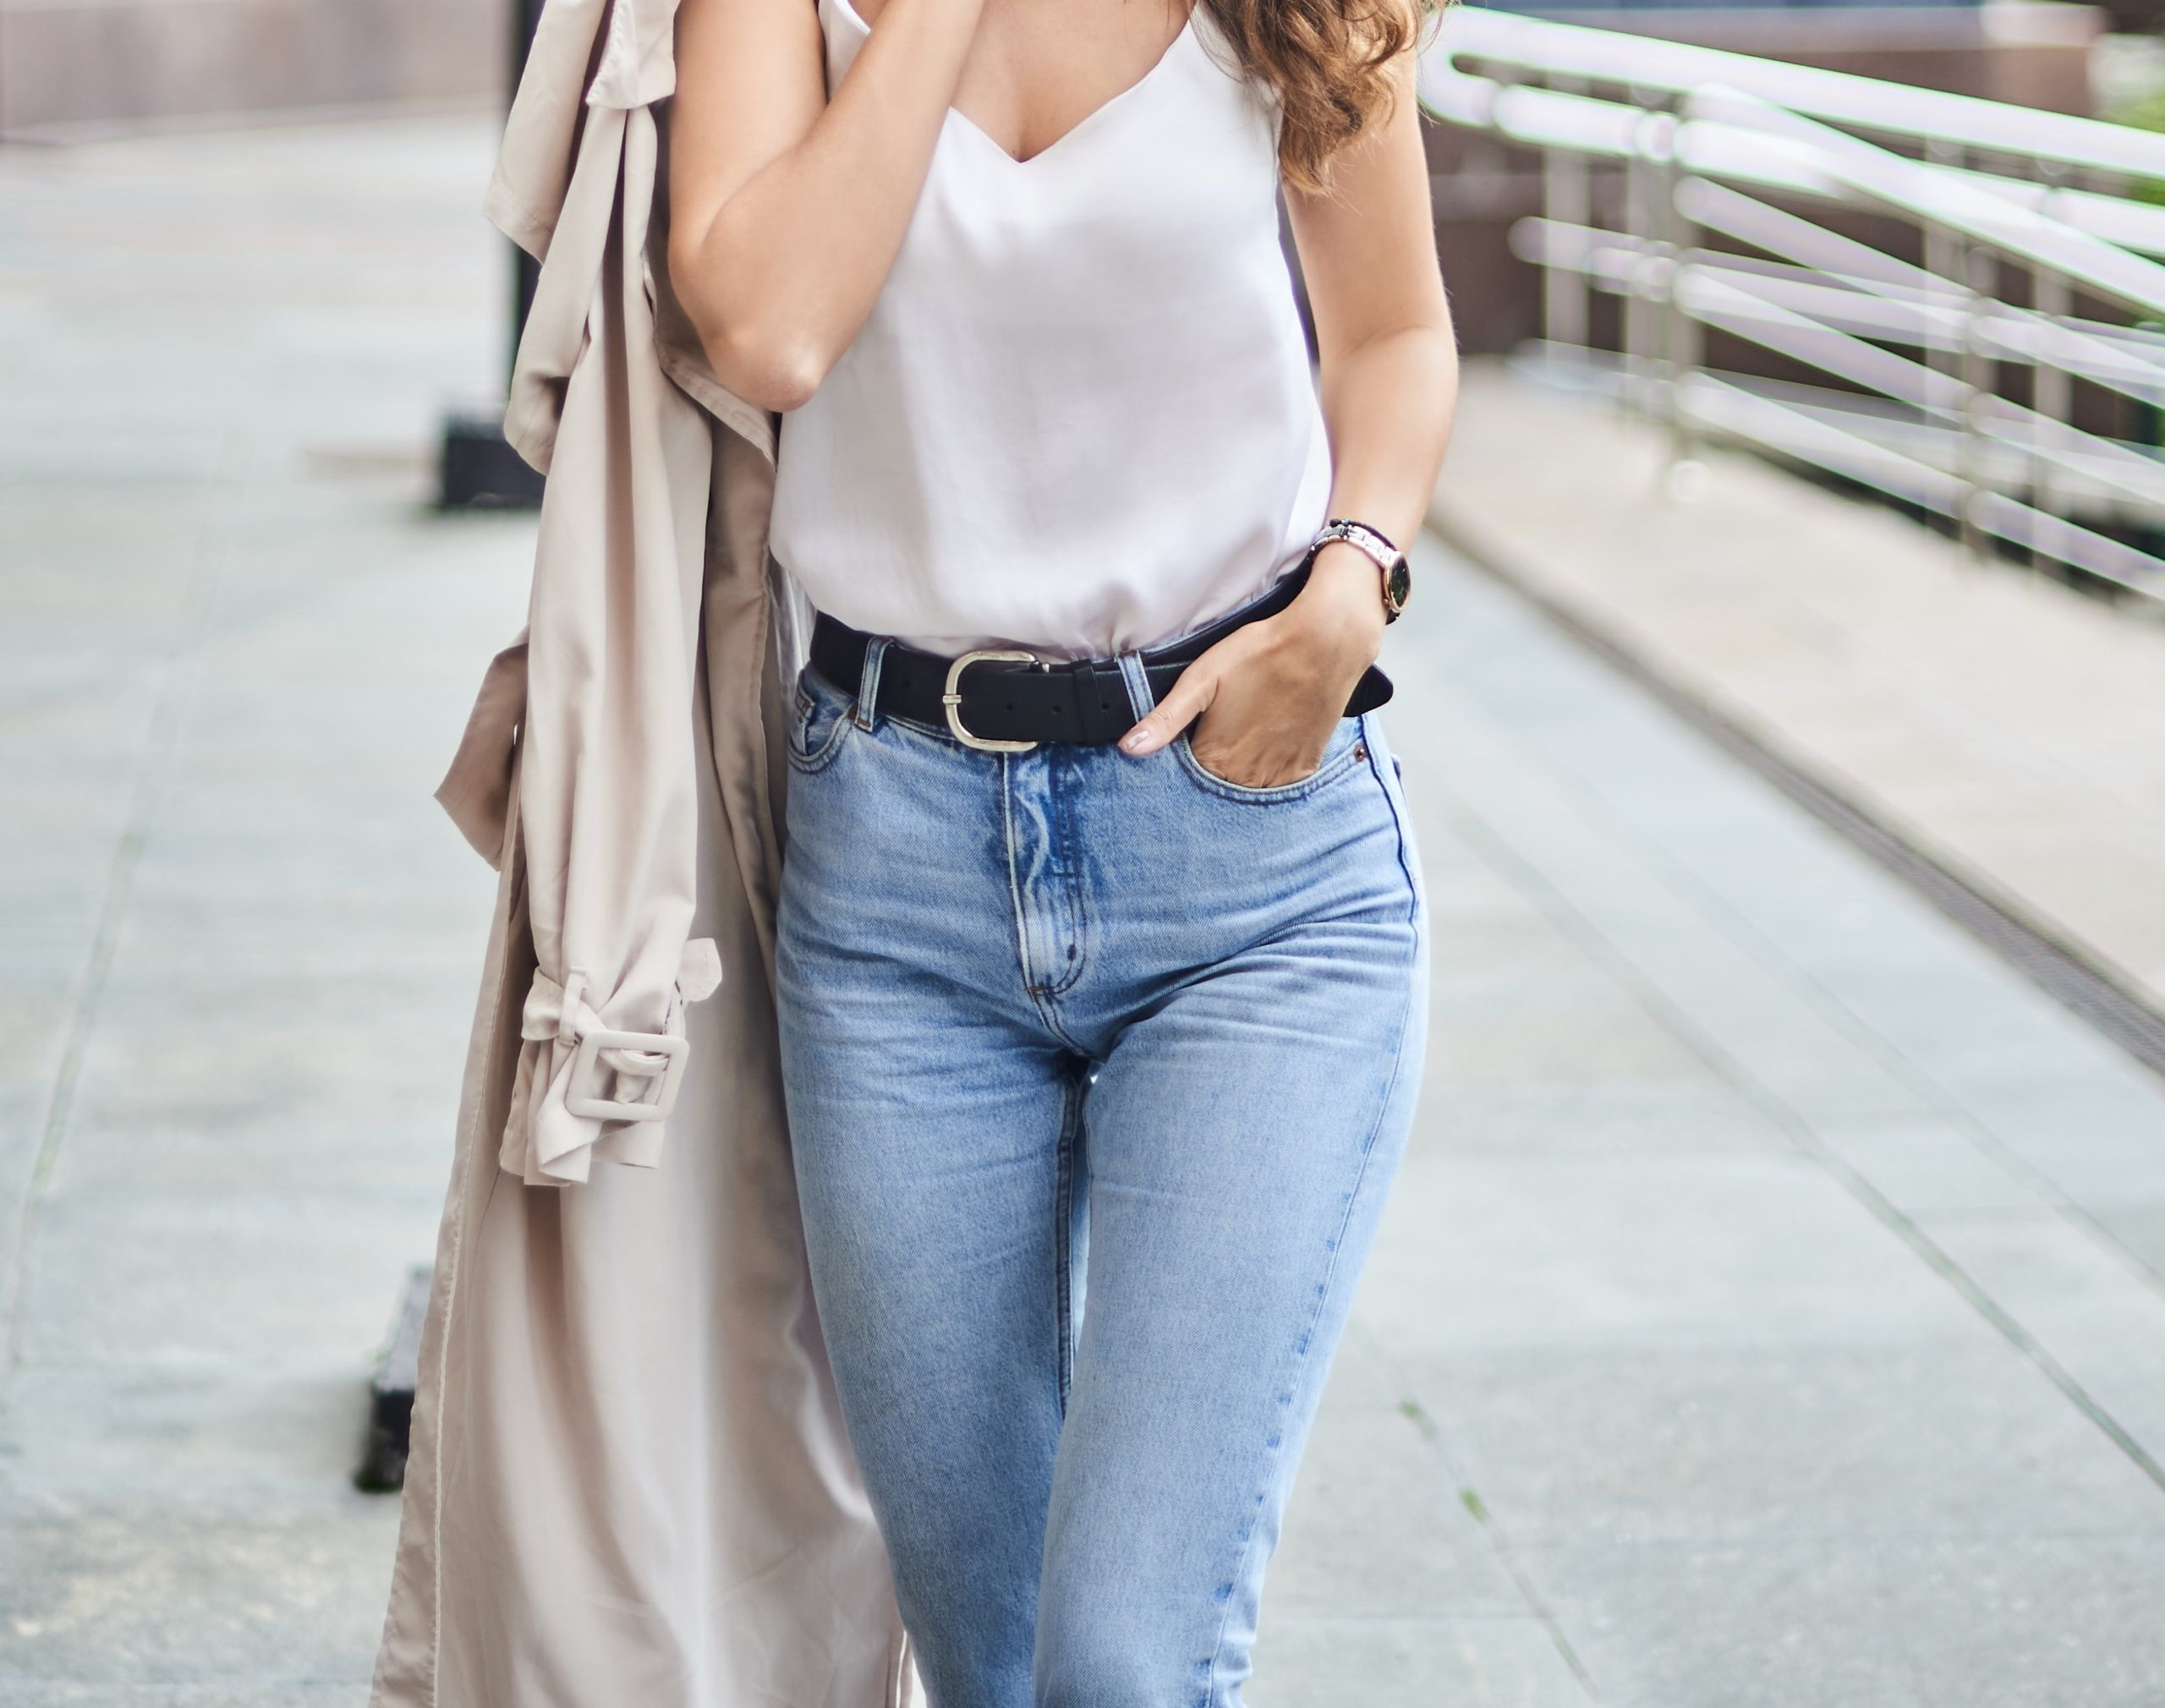 how-to-choose-the-perfect-jeans,-according-to-your-body-type